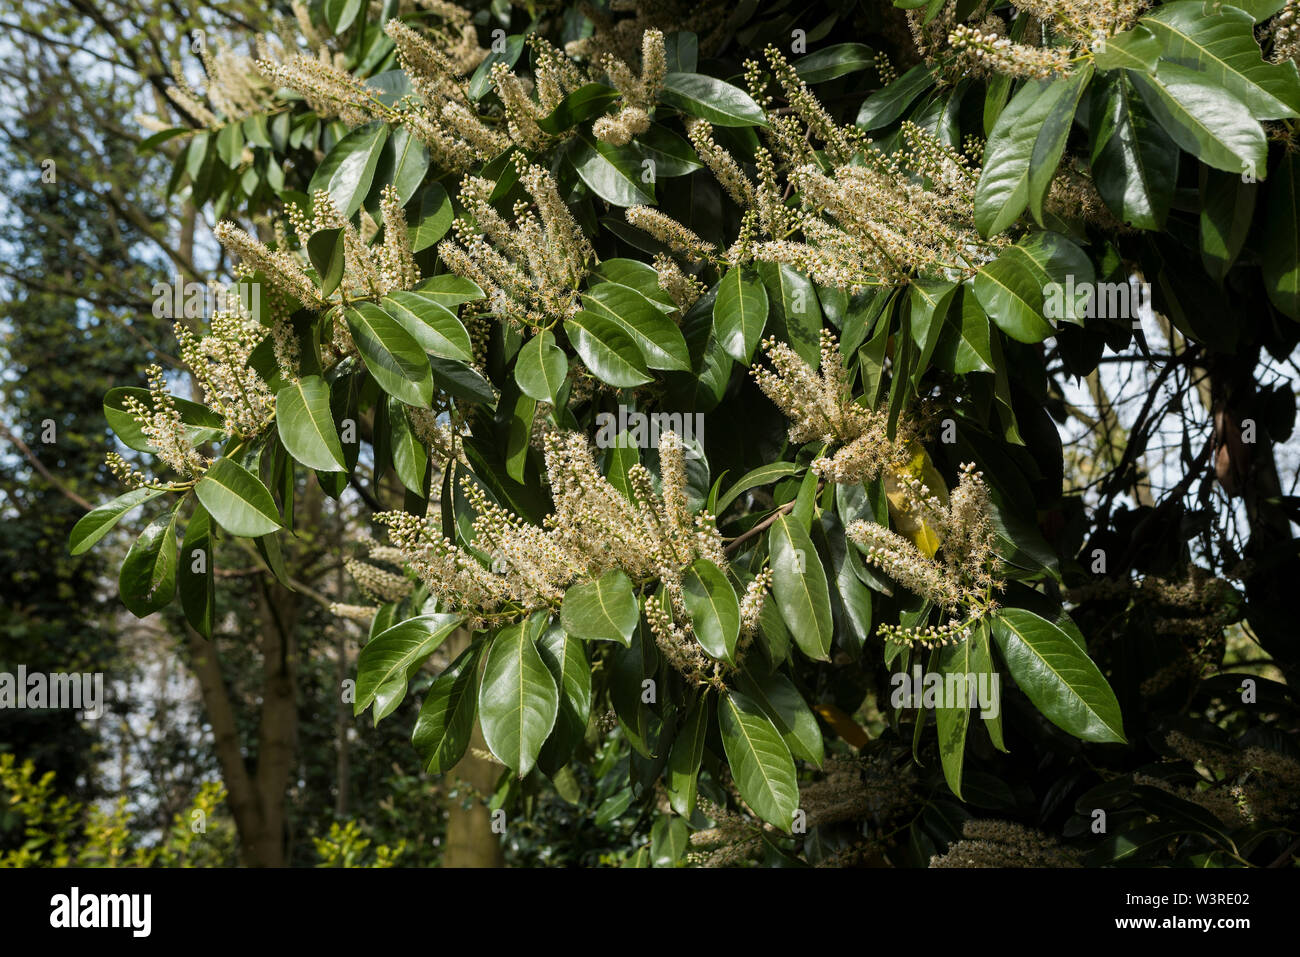 English Laurel or Cherry Laurel is a shrub / tree ( Prunus laurocerasus ) , shown in bloom. Poisonous plant if eaten, poss. fatal respiratory issues. Stock Photo